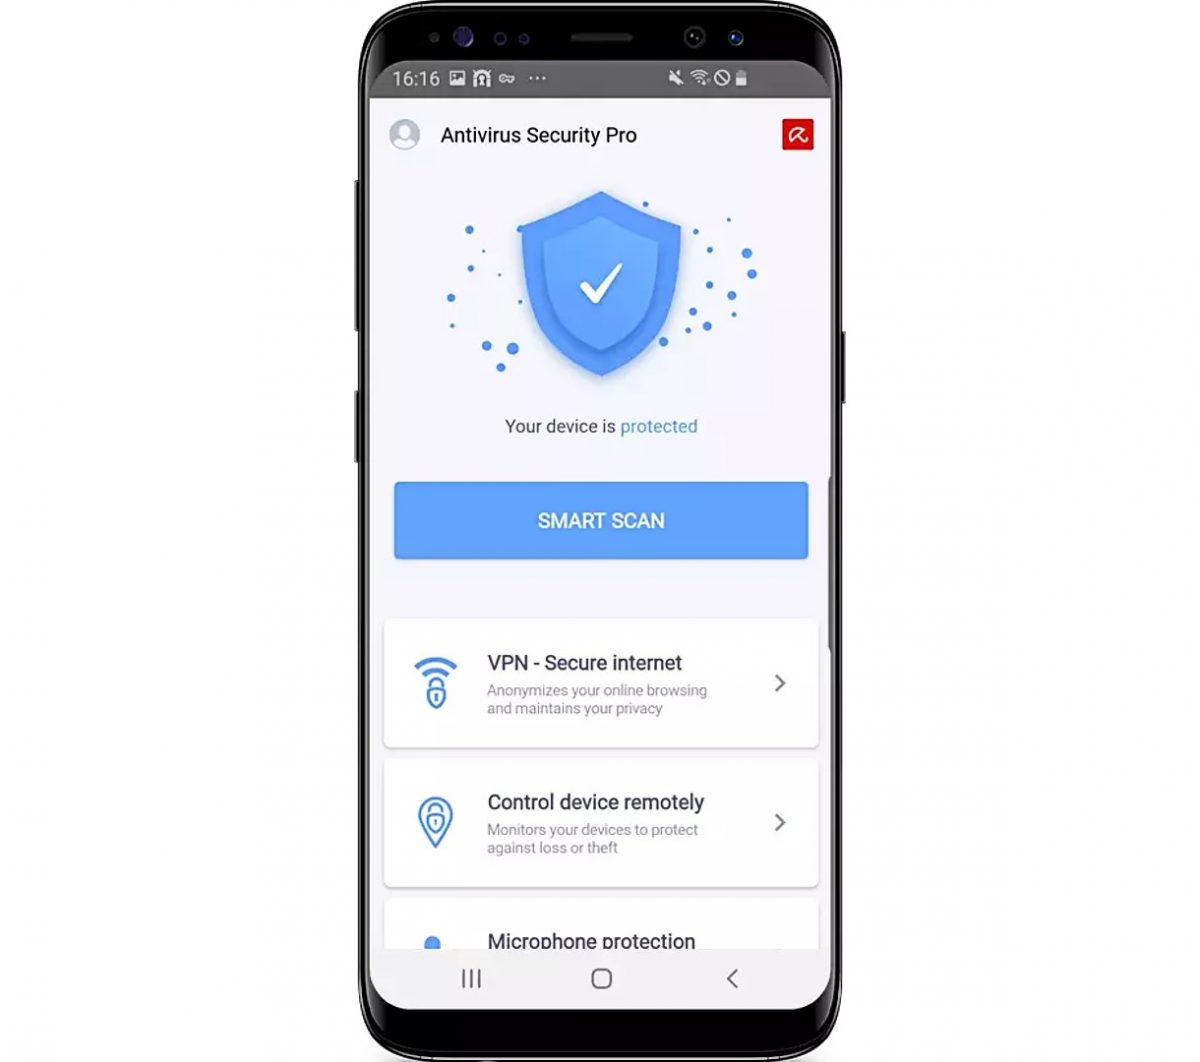 Avira free antivirus for Android devices